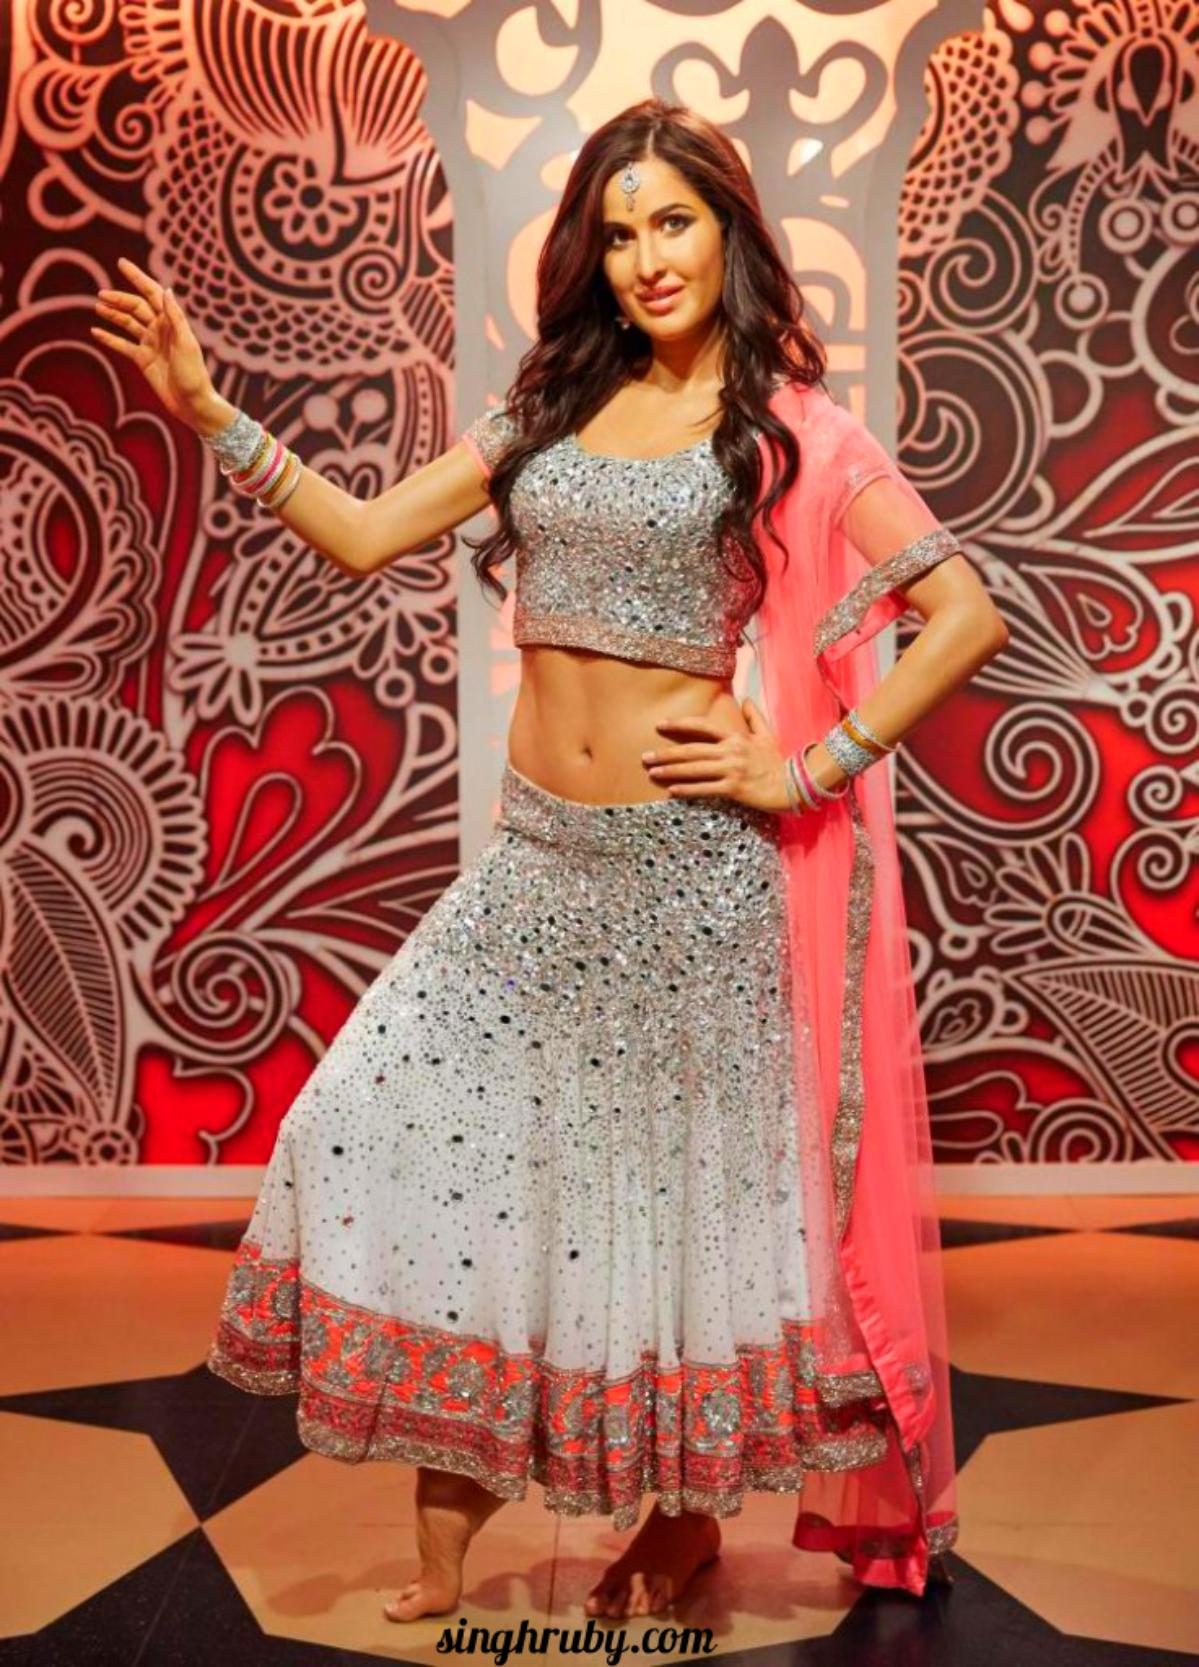 Katrina Kaif at Madam Tussauds London